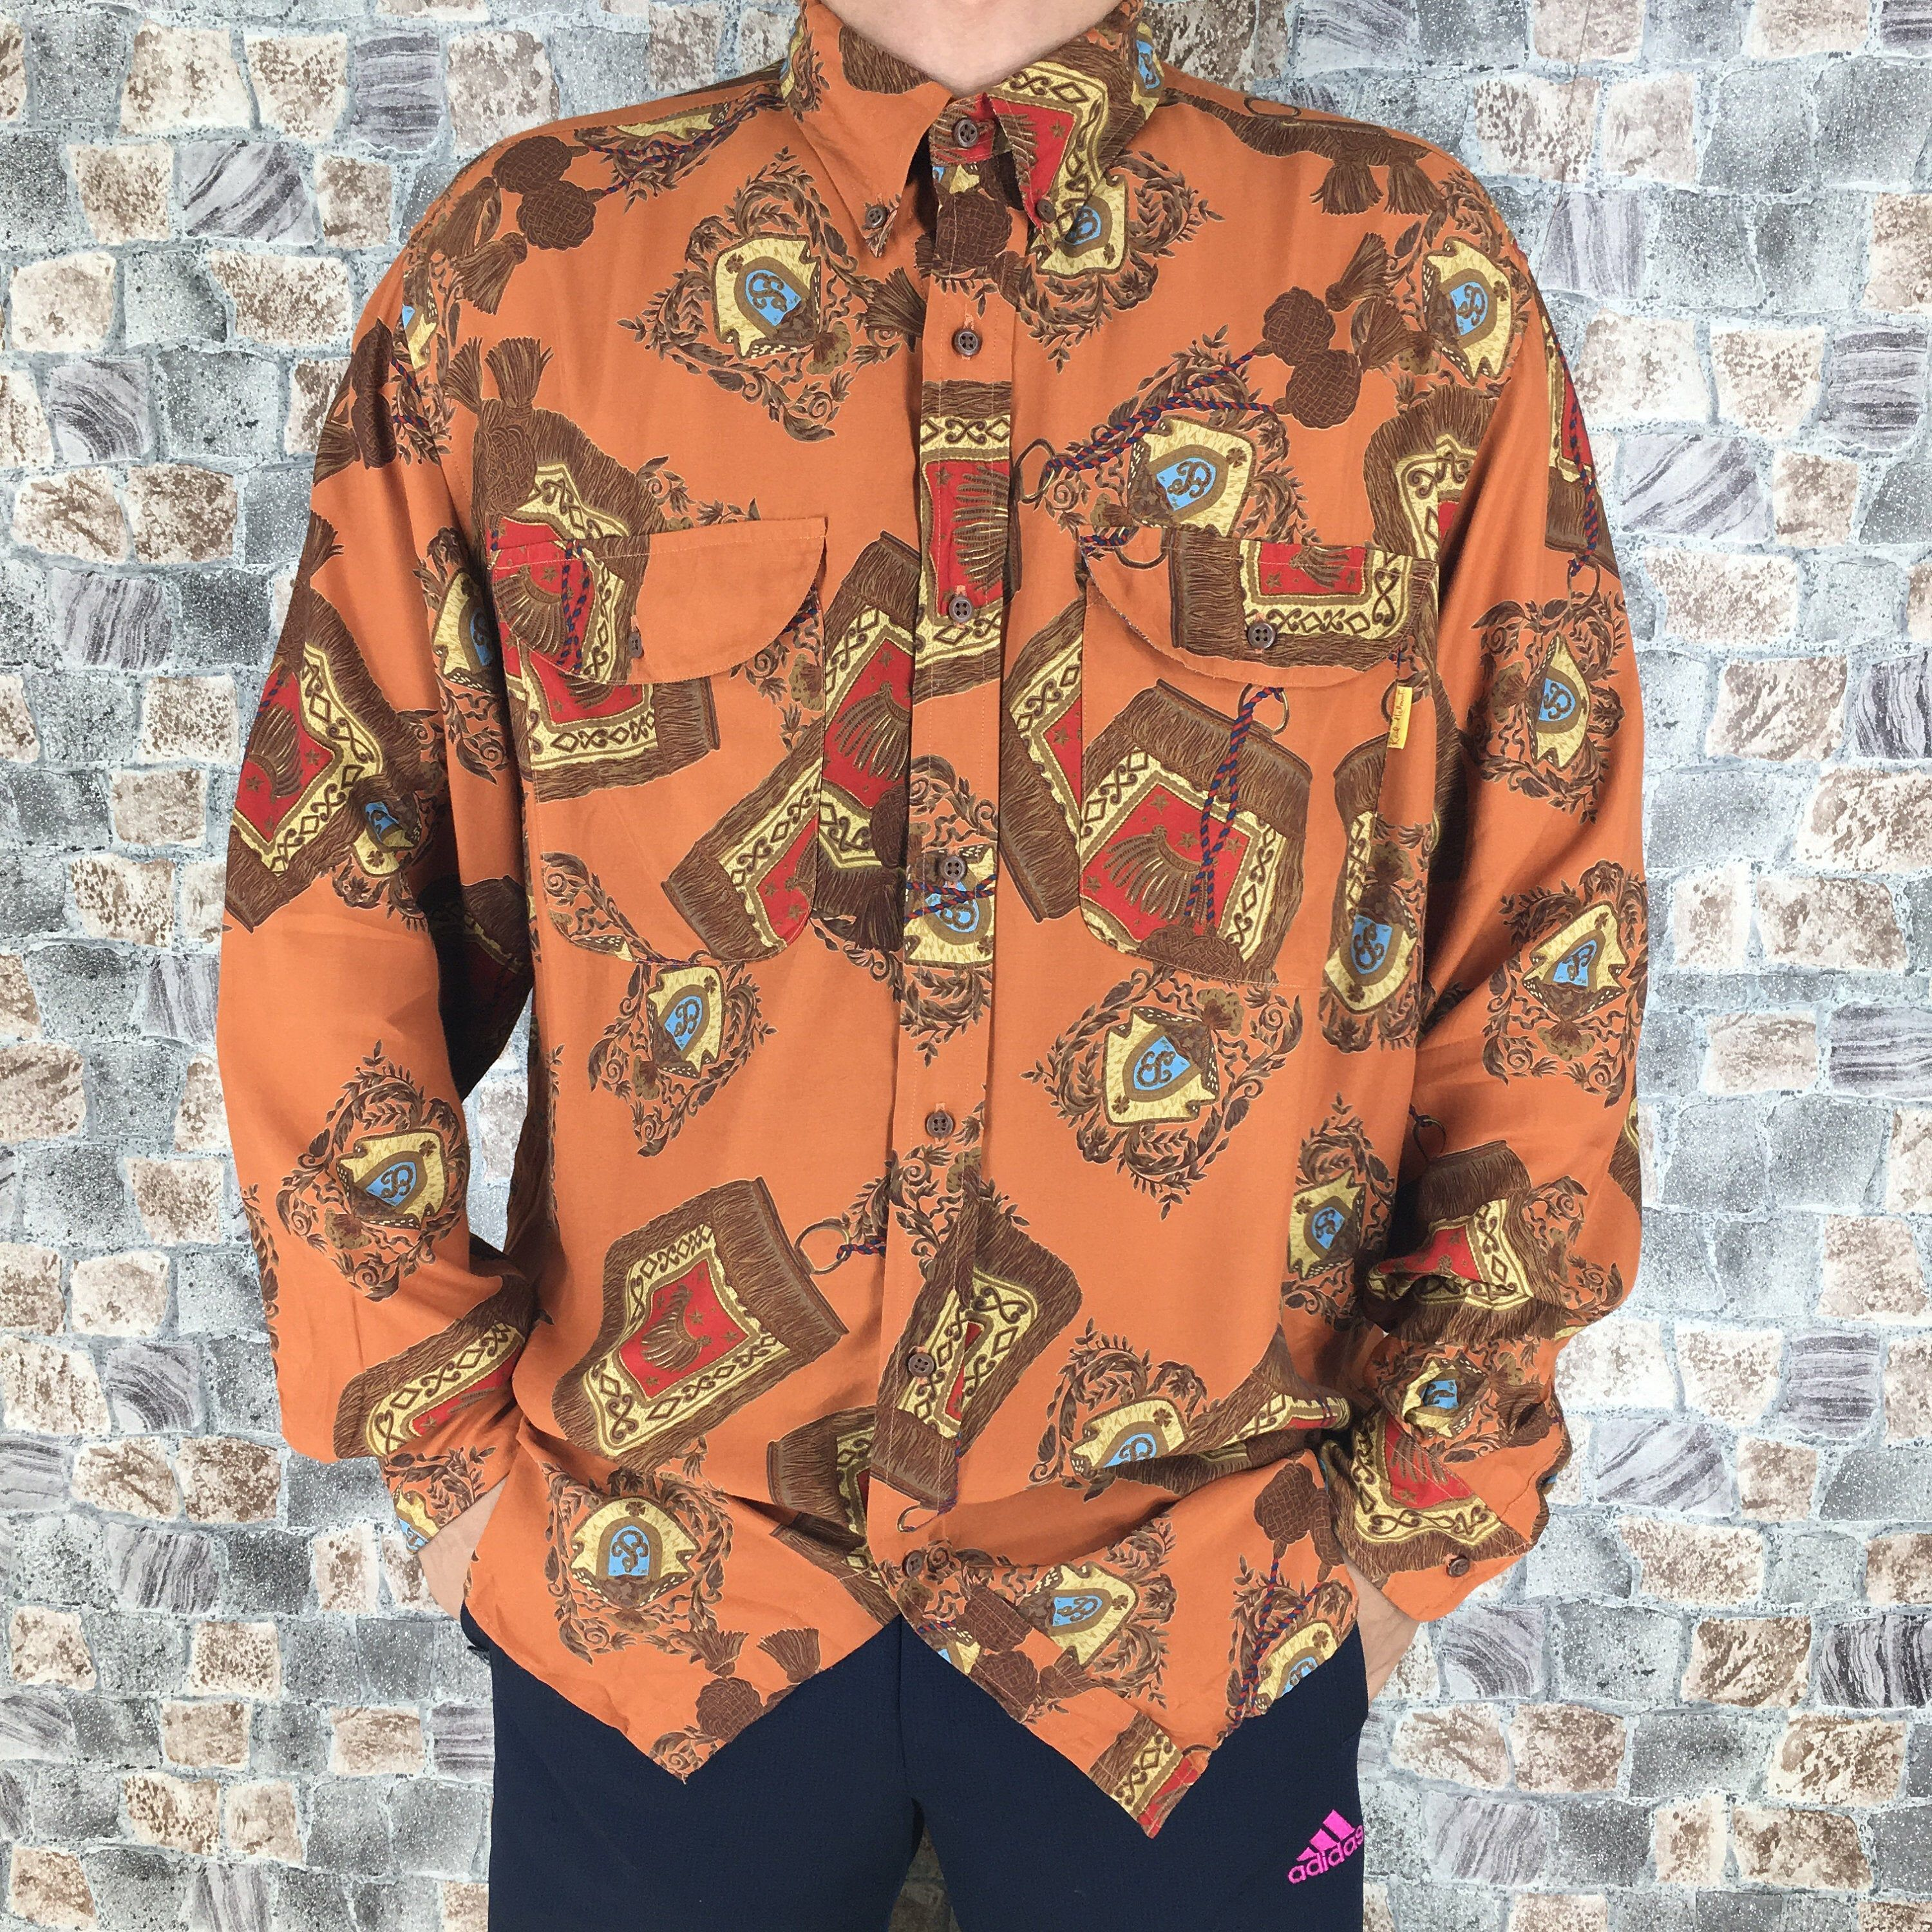 Vintage 90s Abstrack Artwork Royalty Classic Novelty Baroque Psychedelic Luxury Buttondown Rayon Shirt Size XL